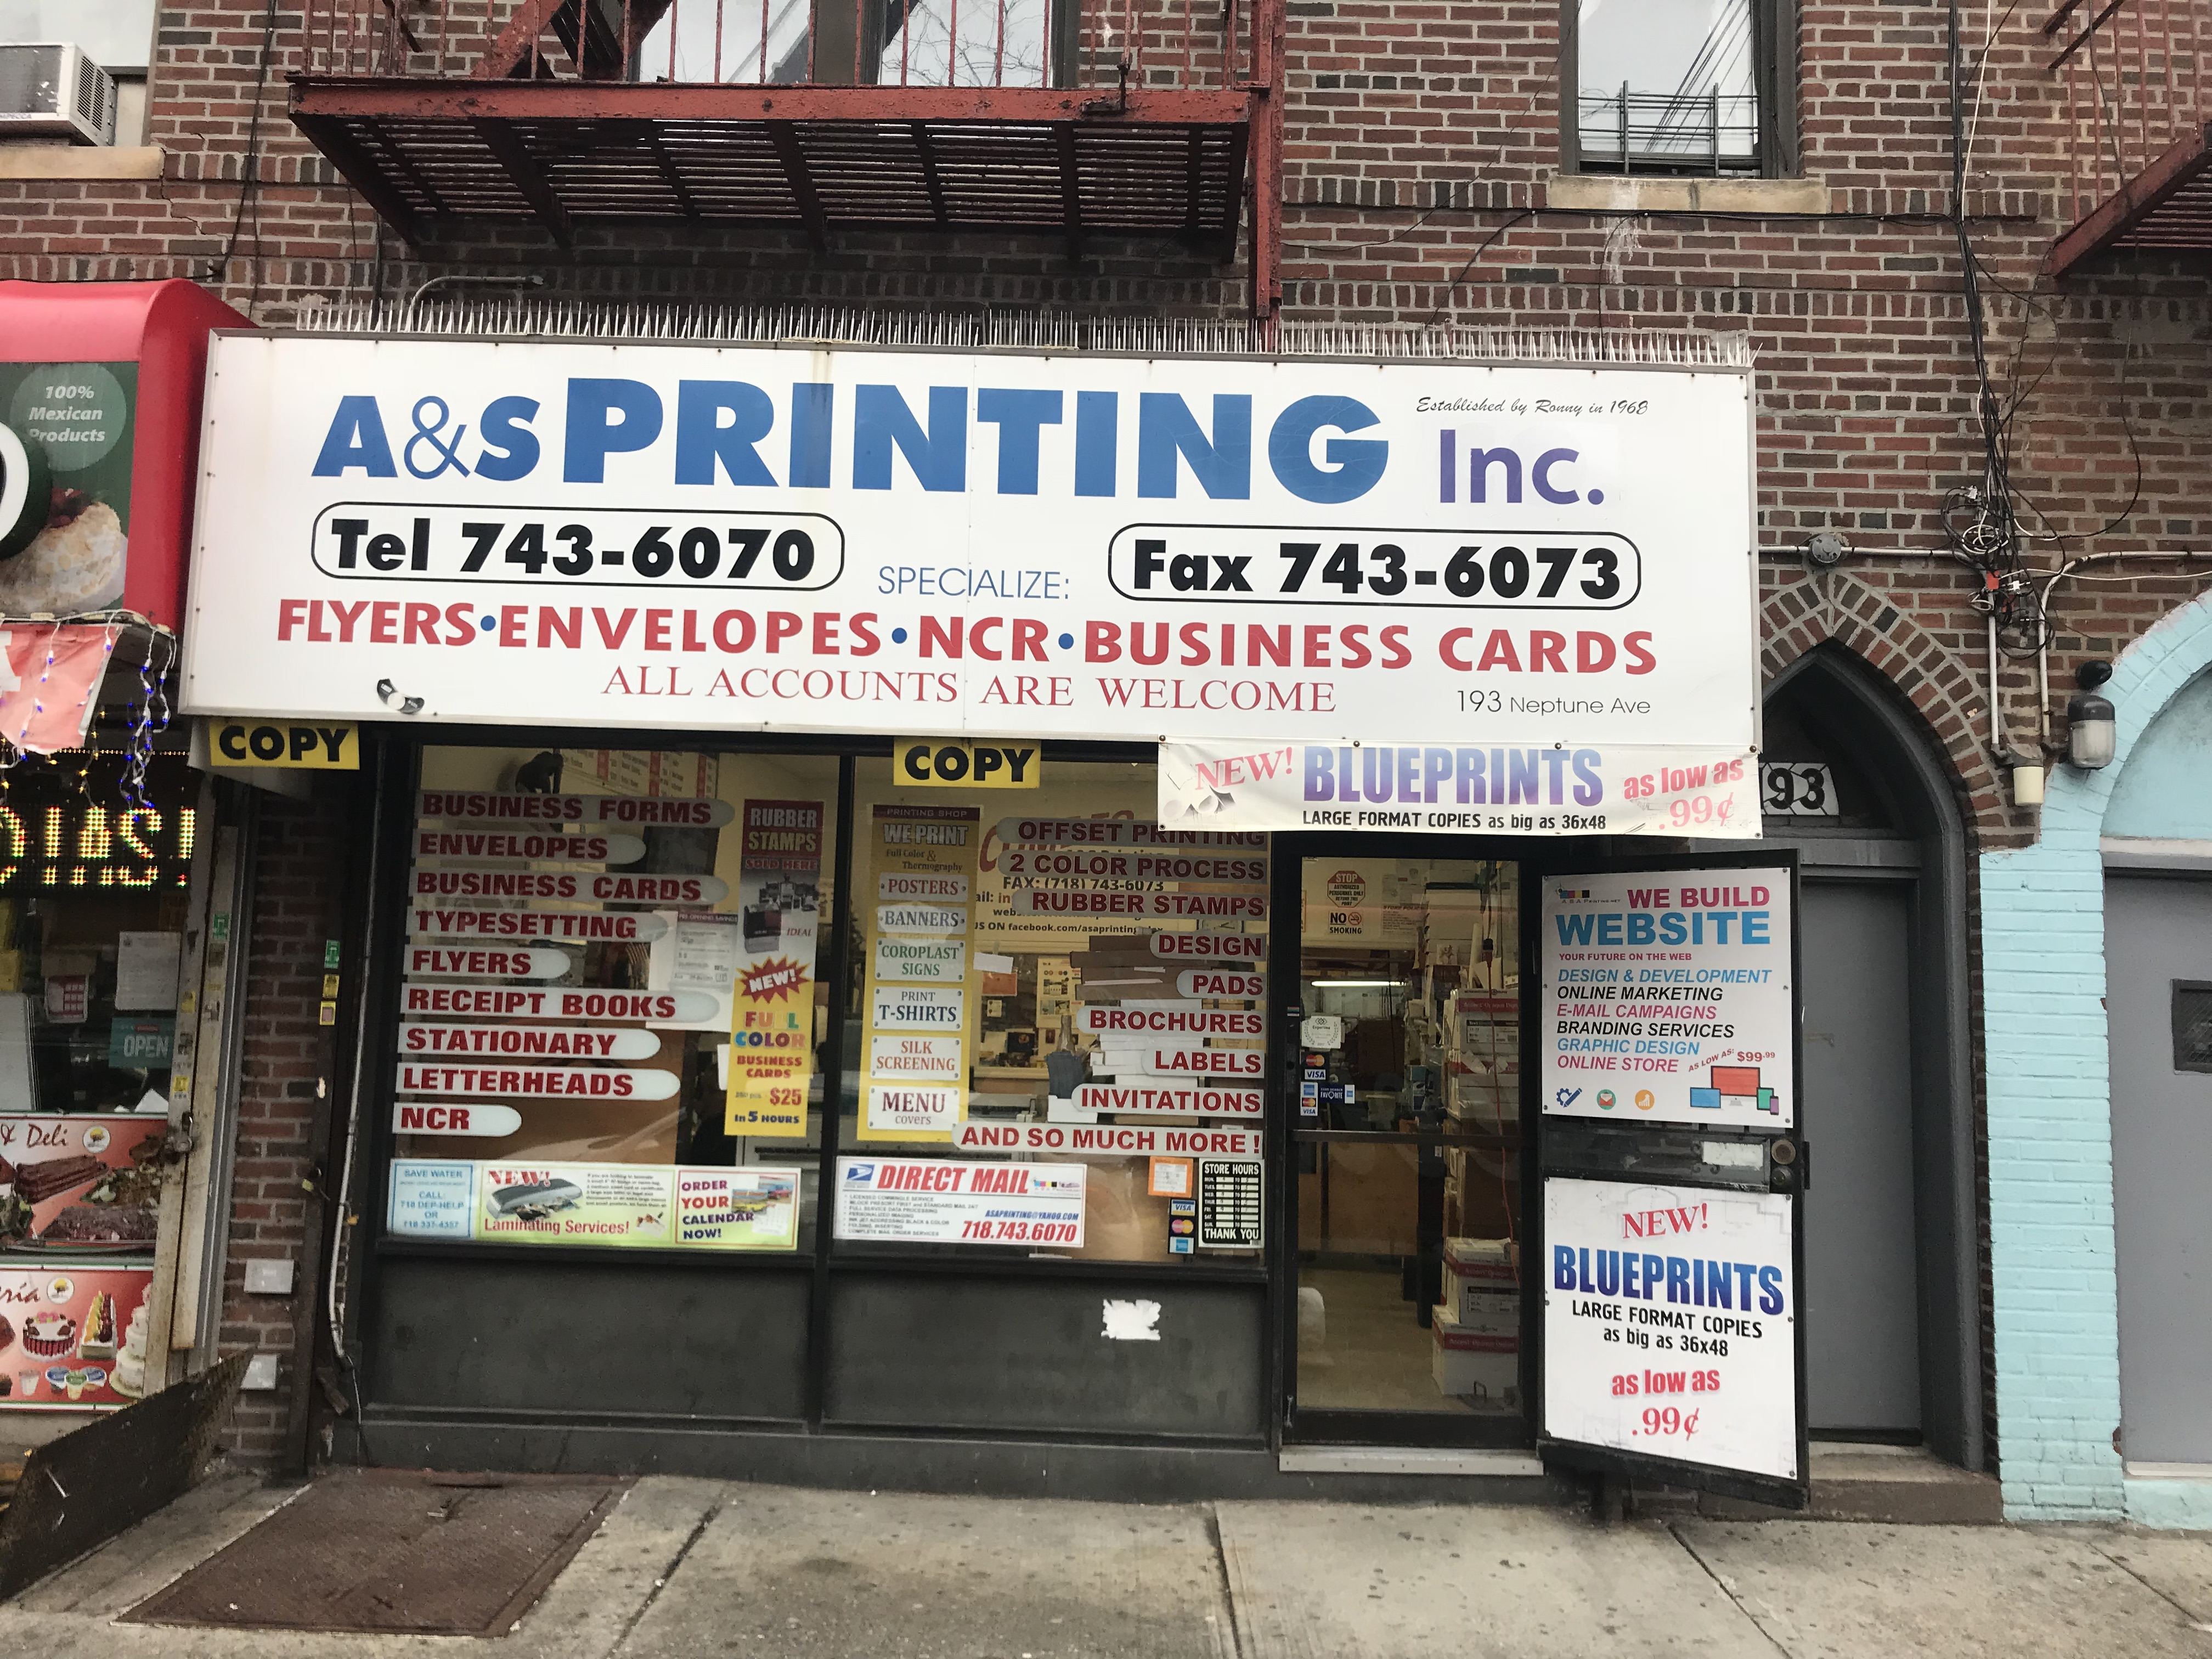 As printing inc 193 neptune avenue brooklyn ny 11235 yp malvernweather Images